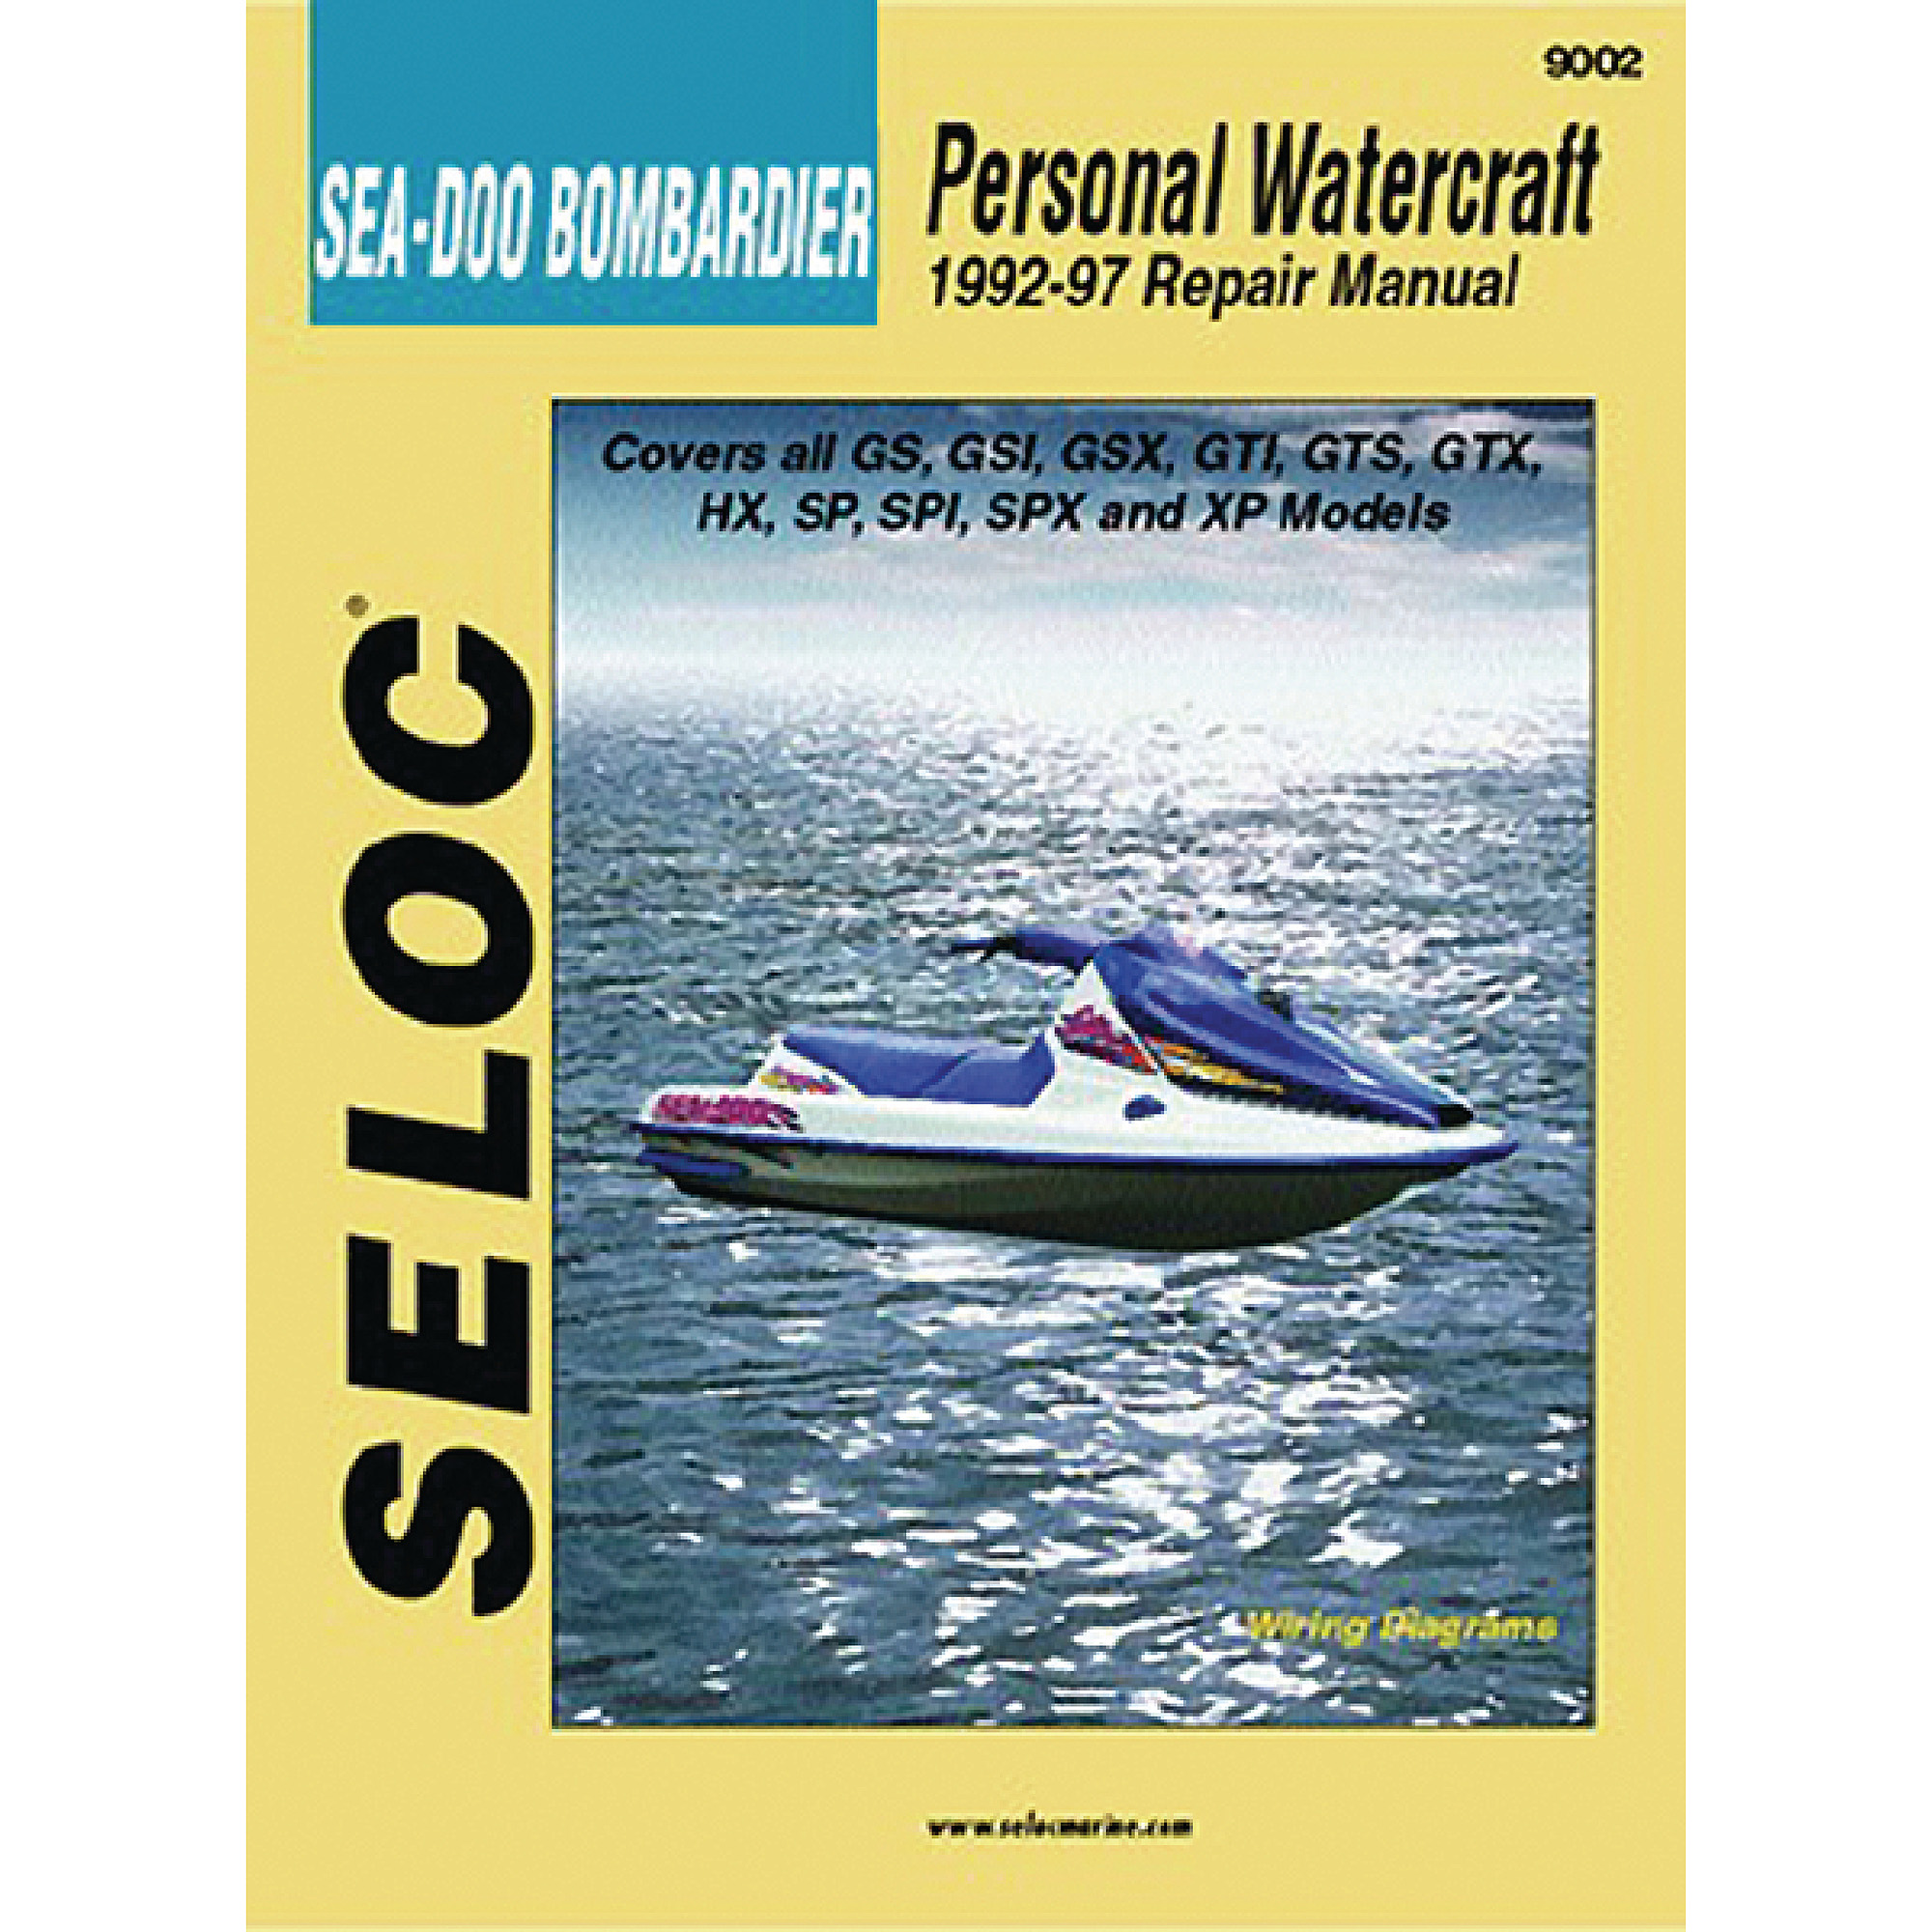 Seloc Marine Manual for Sea-Doo/Bombardier Personal Watercraft - Walmart.com